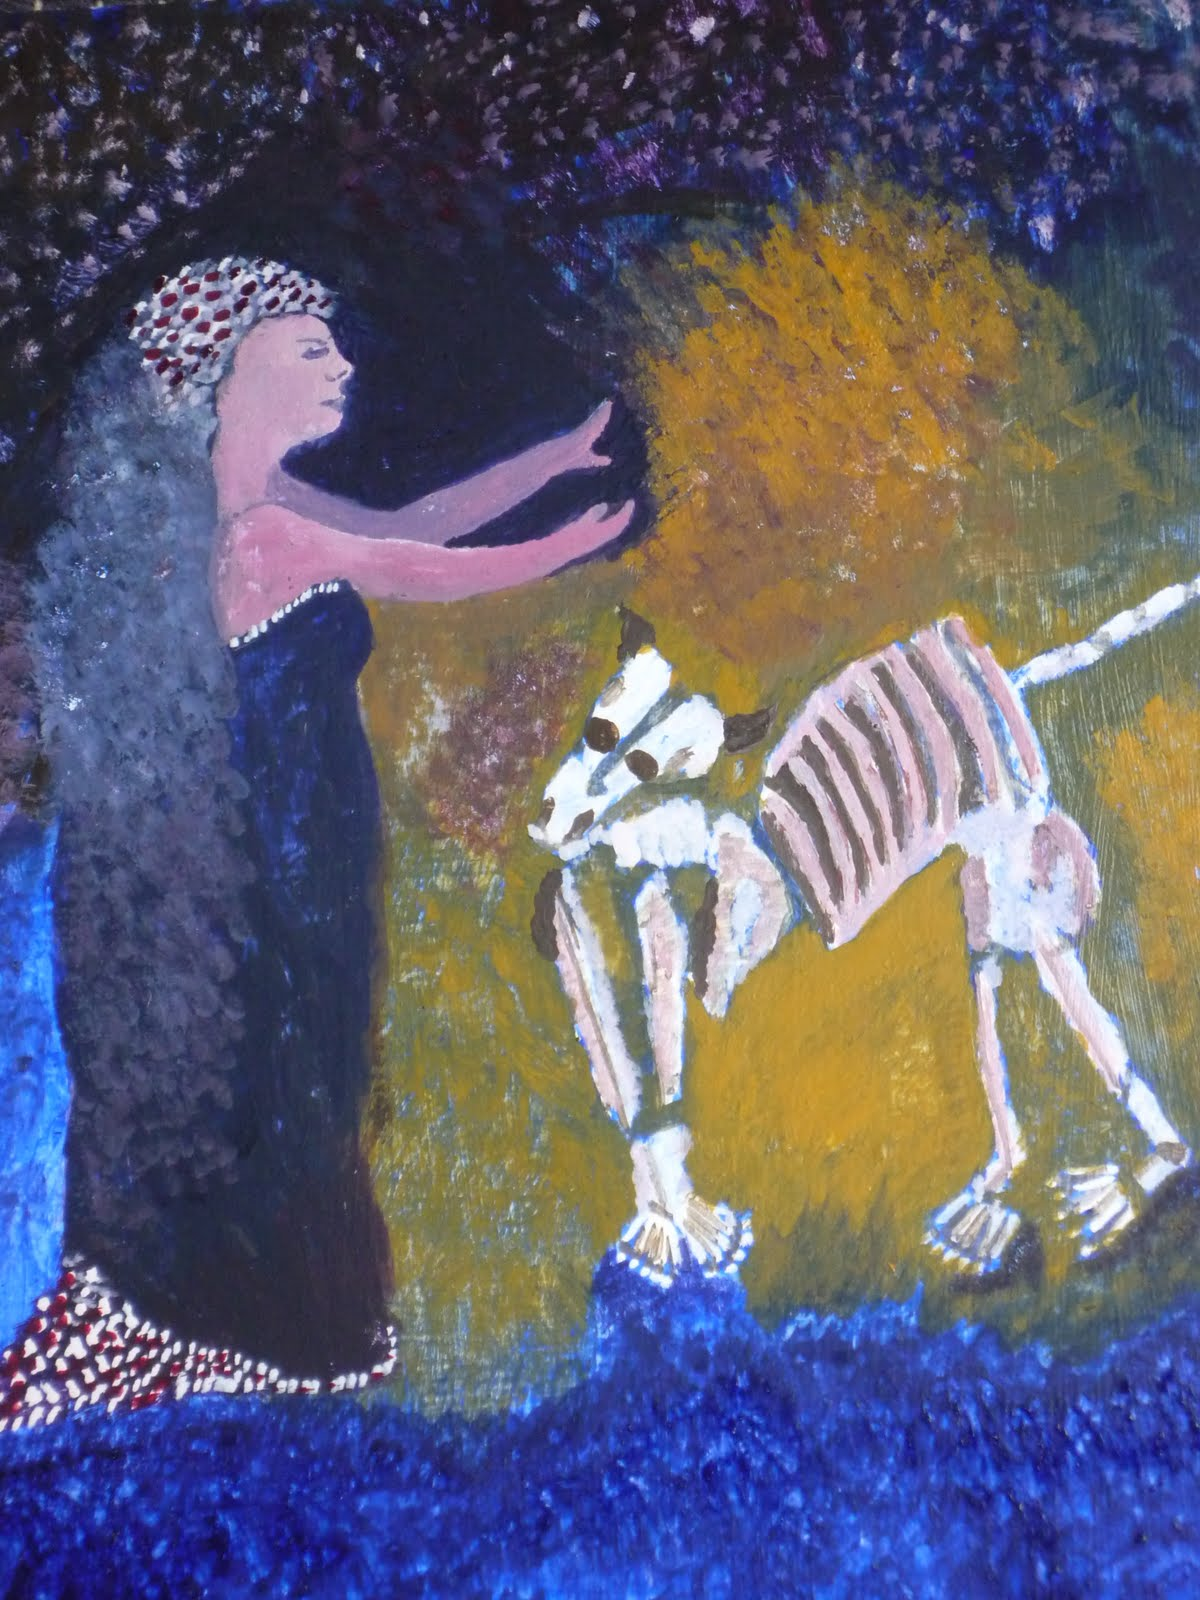 ... egg tempera painting of La Loba/Wolf Woman the collector of bones